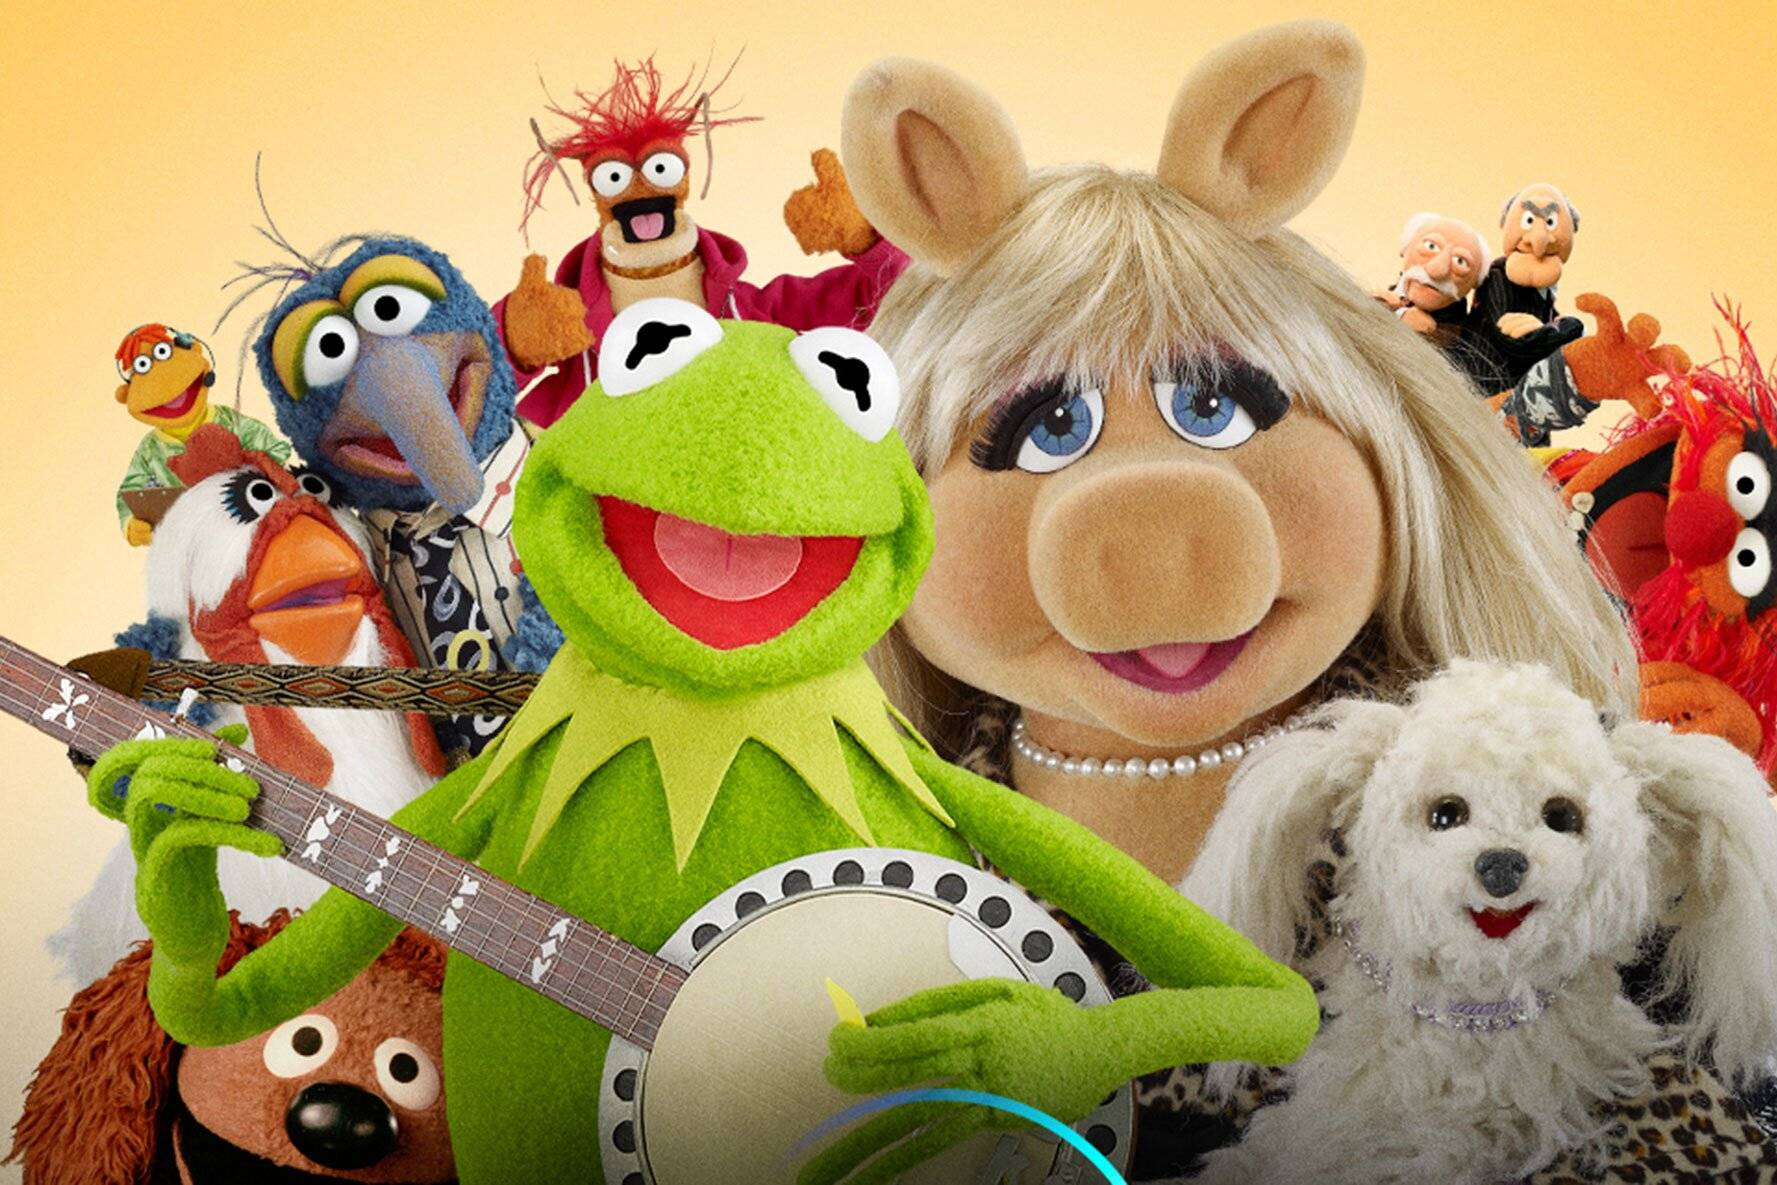 Muppets Now Trailer Released Ahead of Show's Debut on July 31st